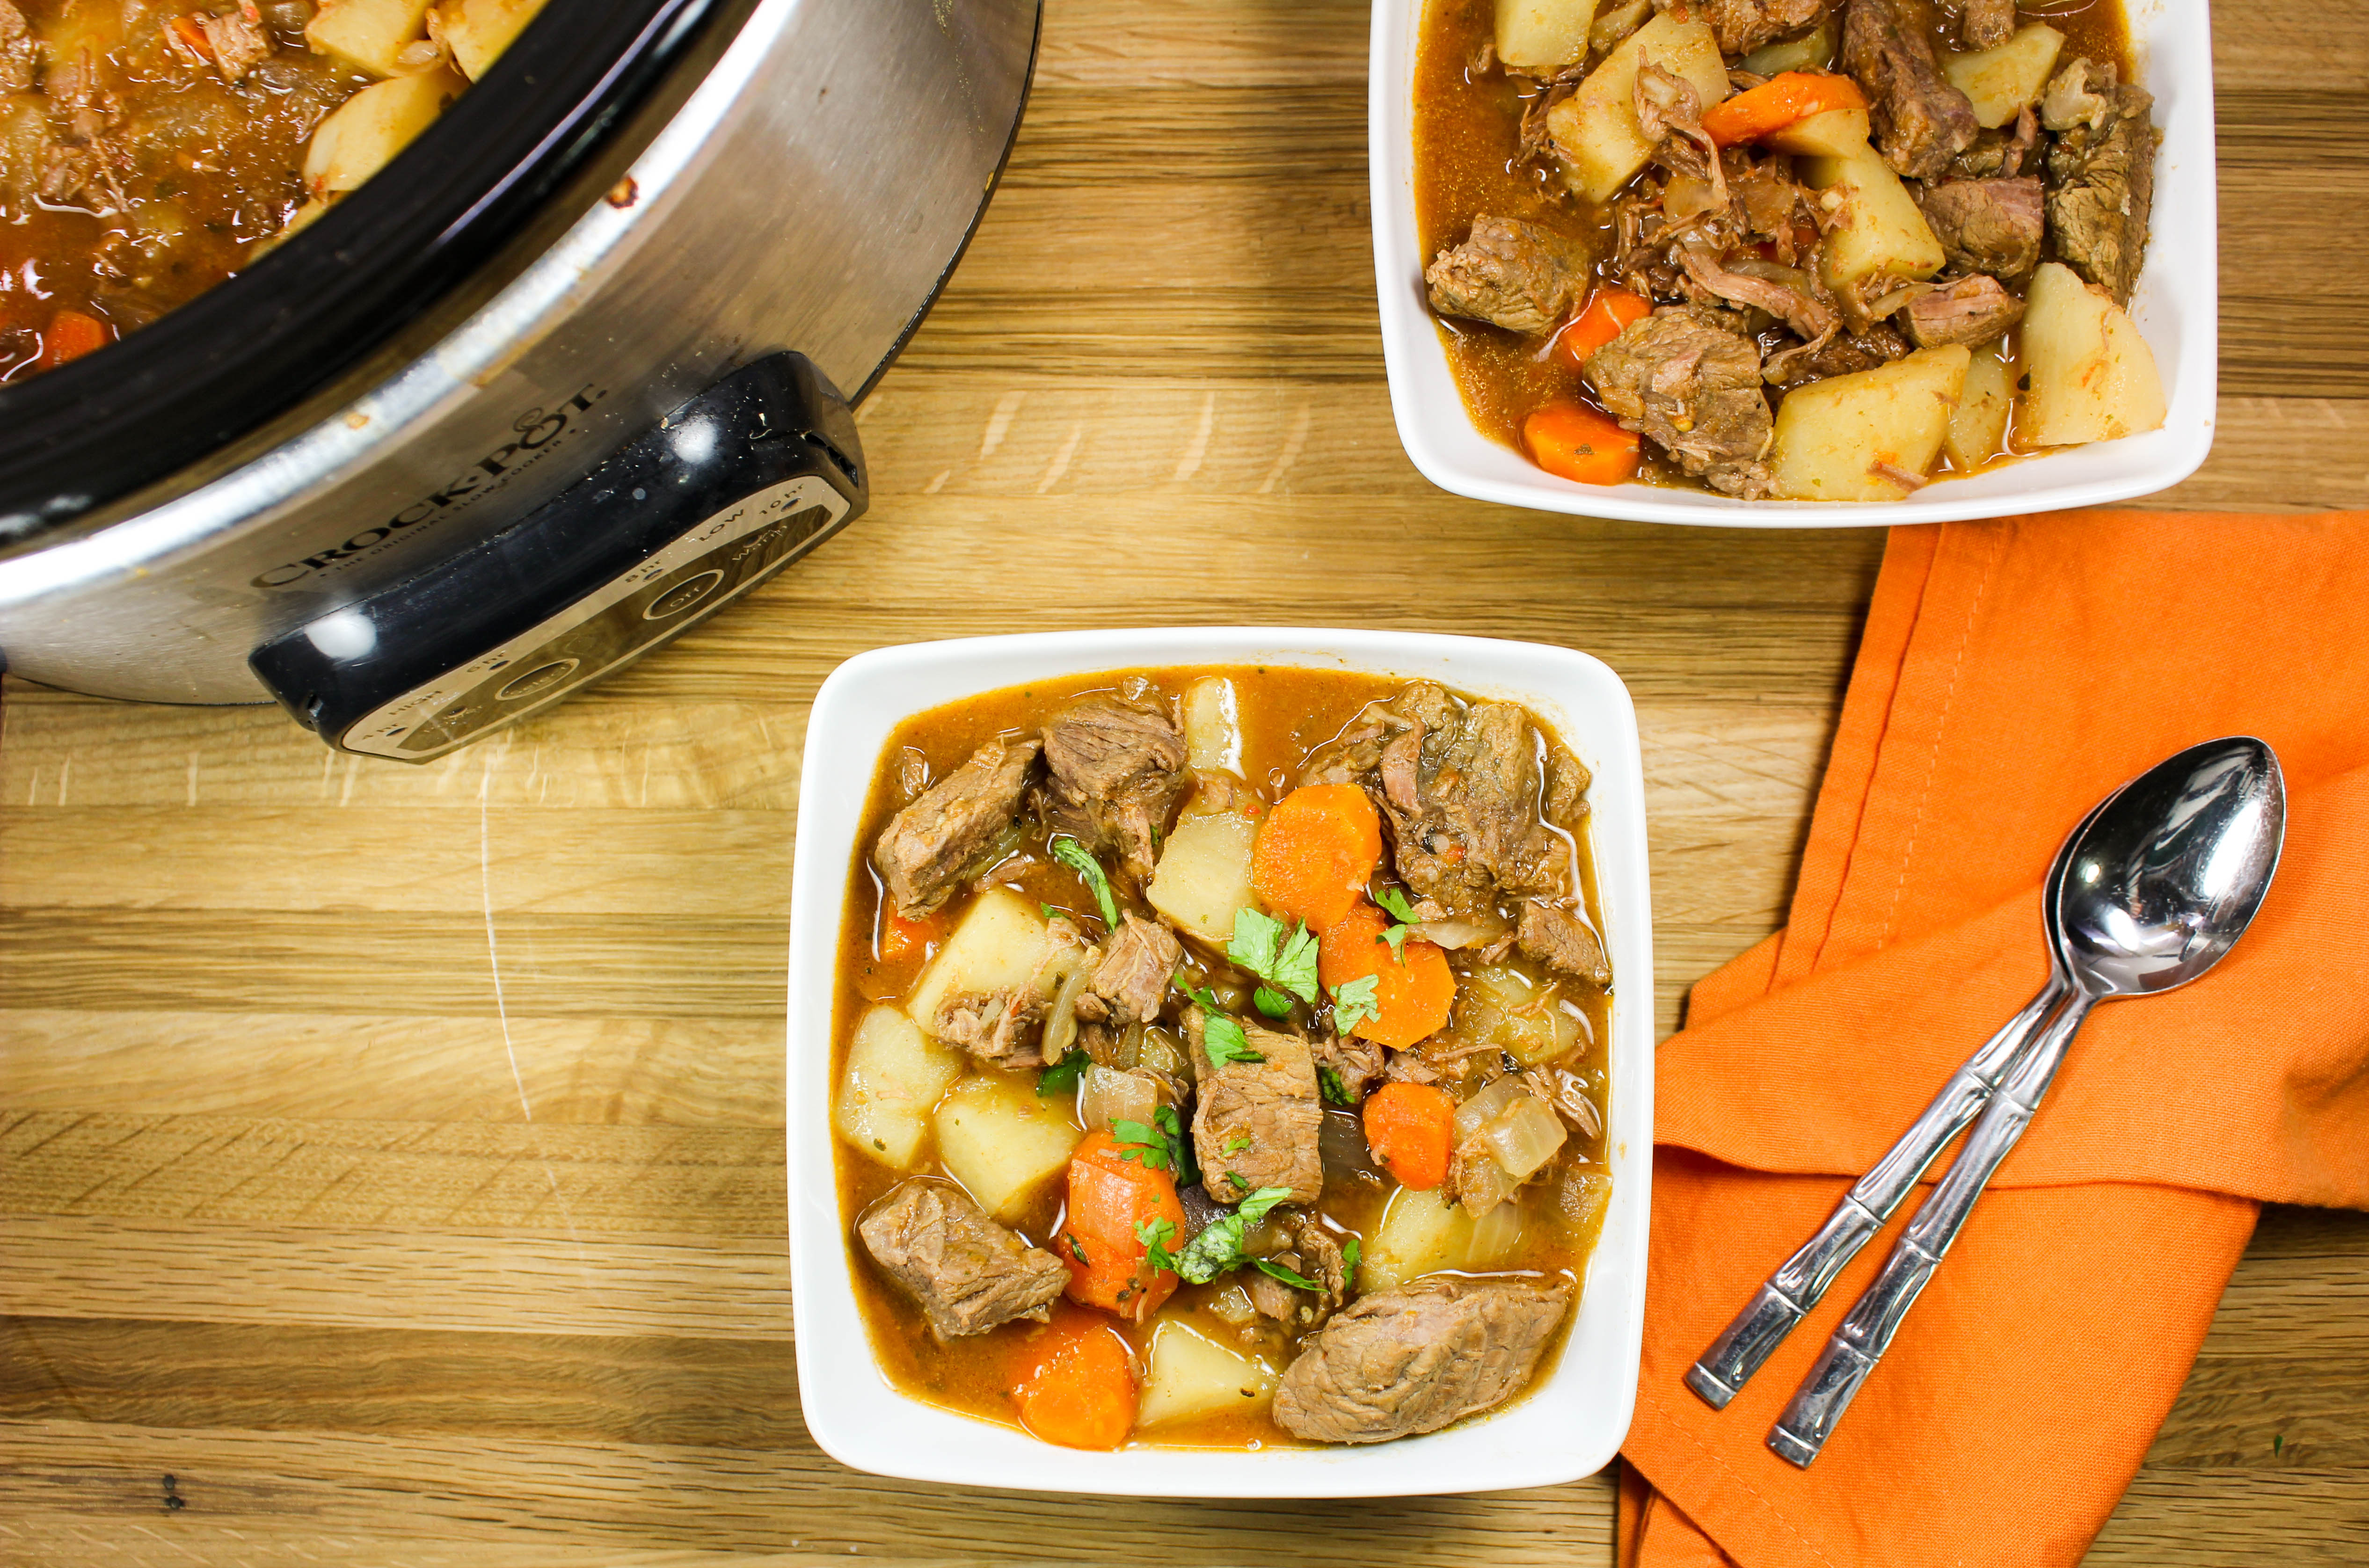 Slow Cooker Mexican Beef Vegetable Stew-Unique twist on classic beef stew. Slow cooked beef, flavorful potatoes & carrots, cooked in delicious Mexican spices are the perfect meal when you are craving comfort food. Made in the crock pot for an easy dinner! Weight Watcher friendly (7 SmartPoints).